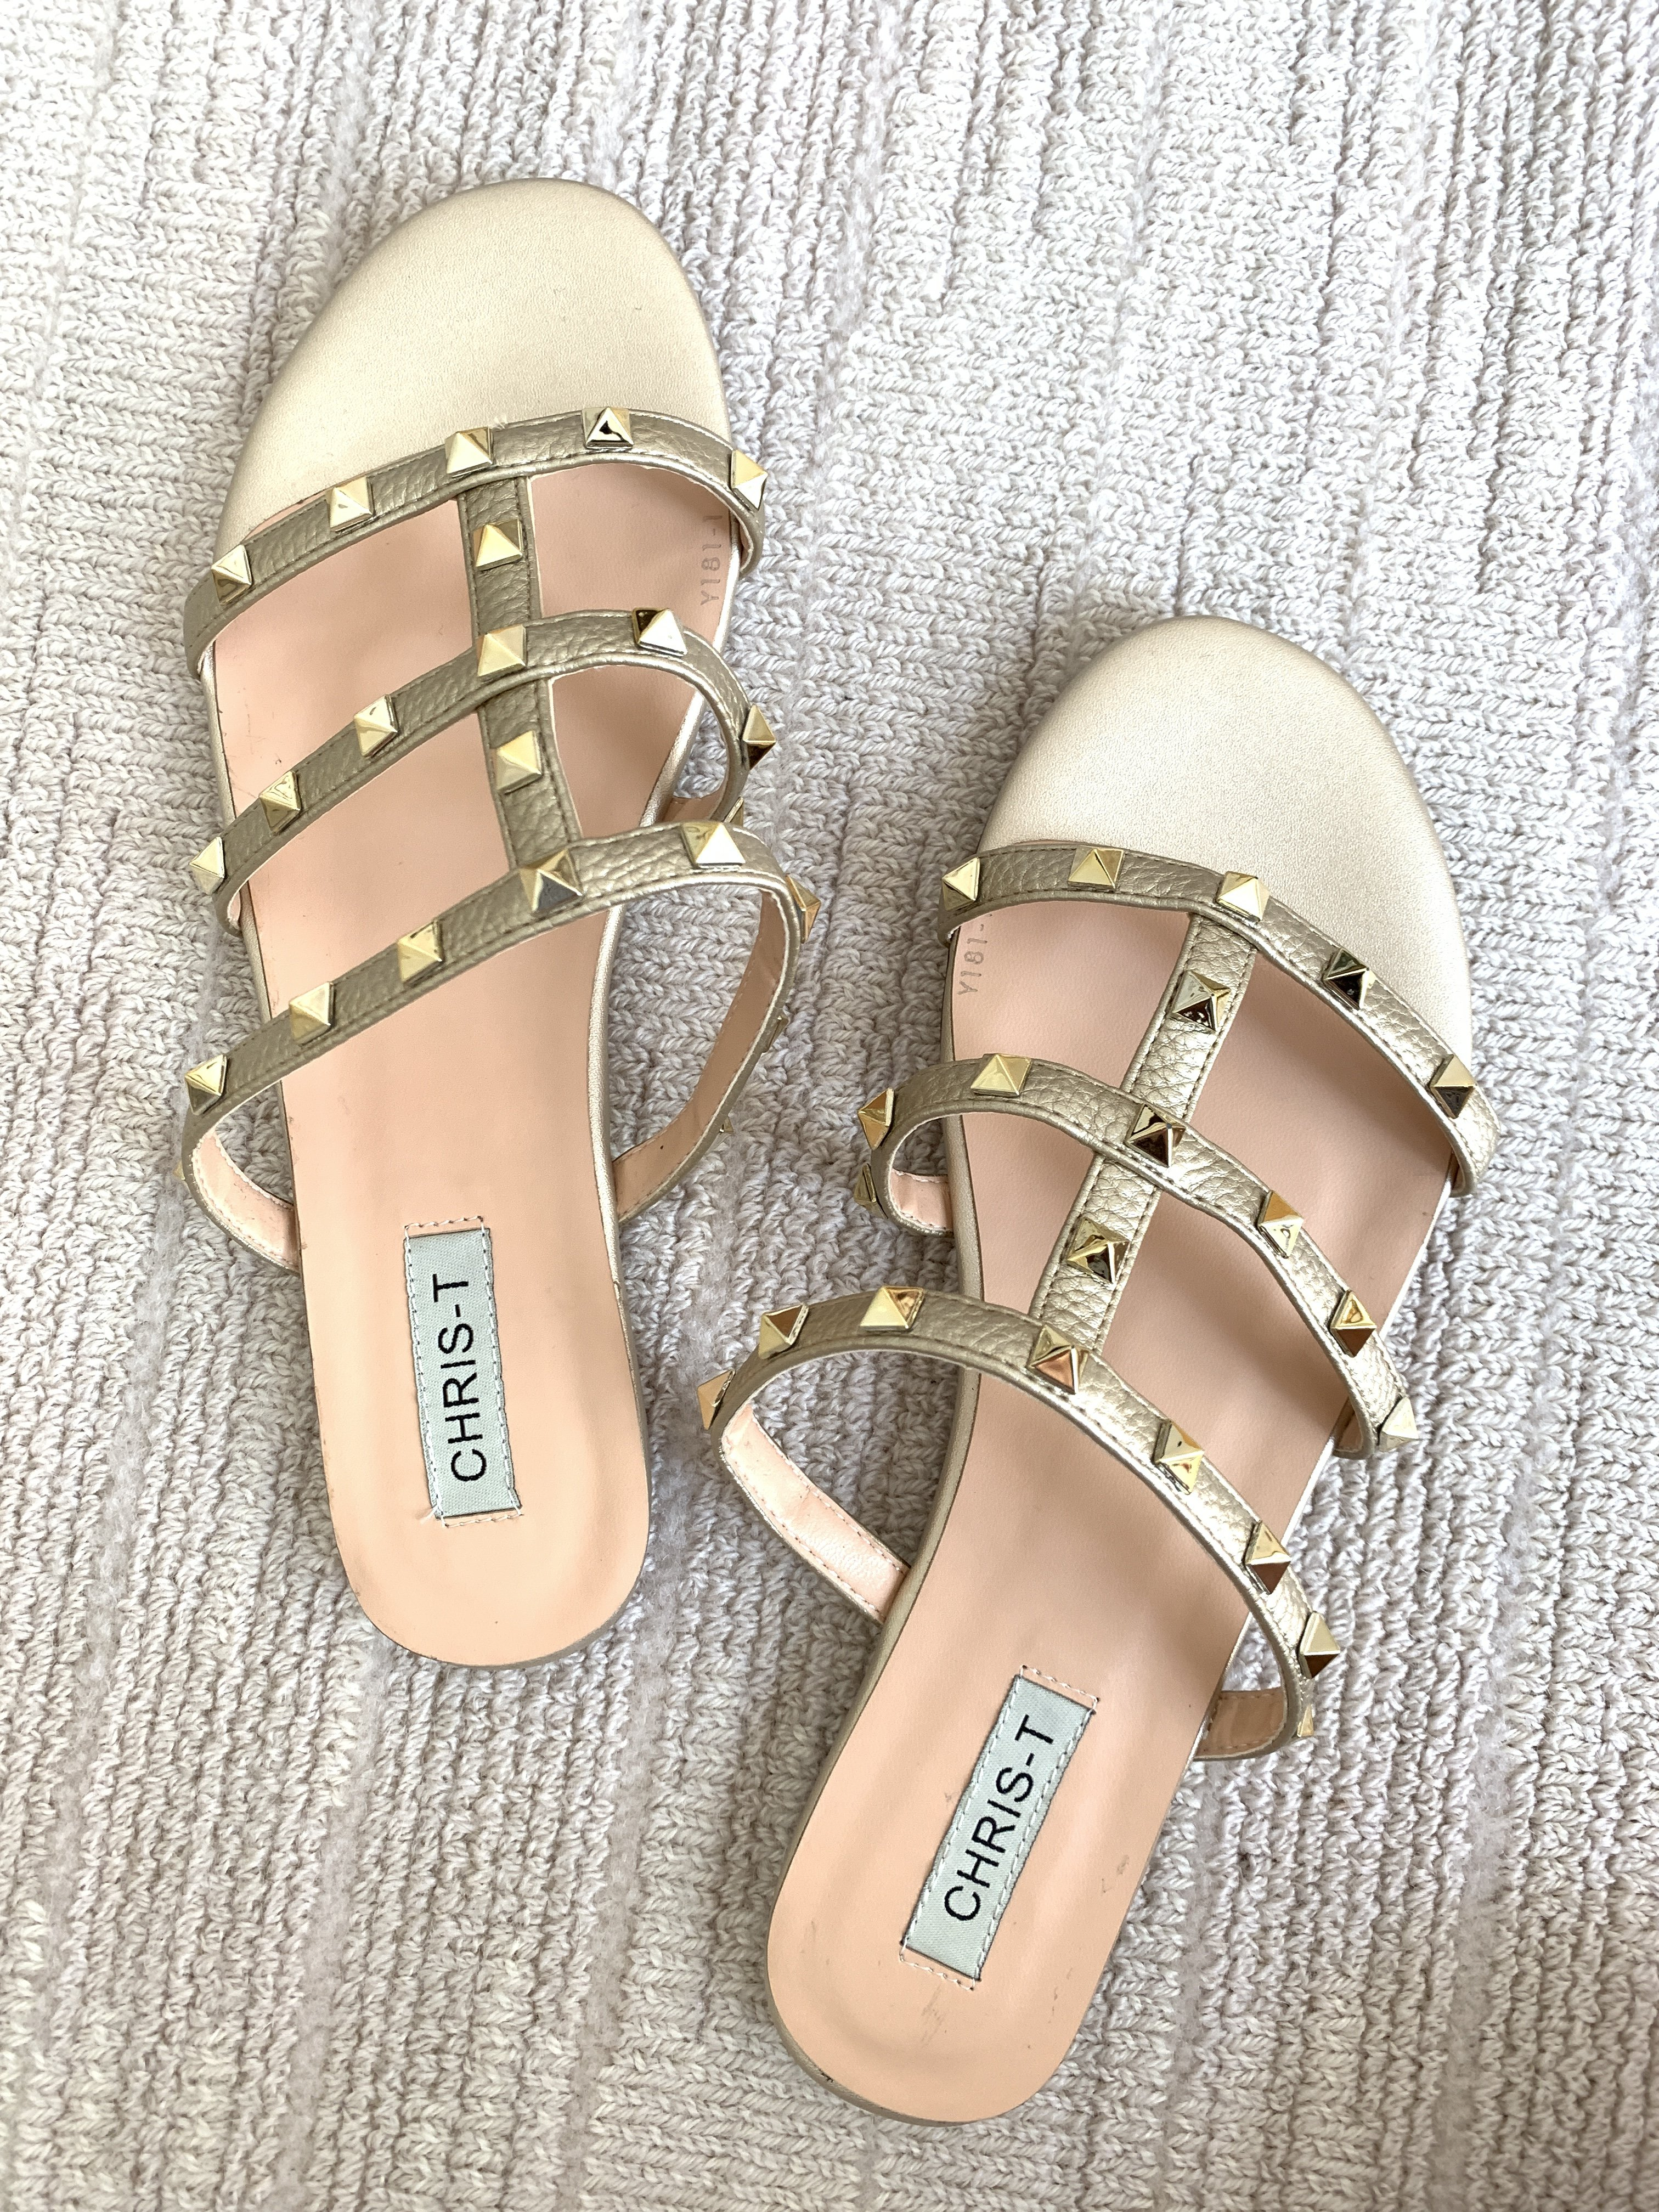 Amazon Fashion Haul Stud Sandal | Style Your Senses